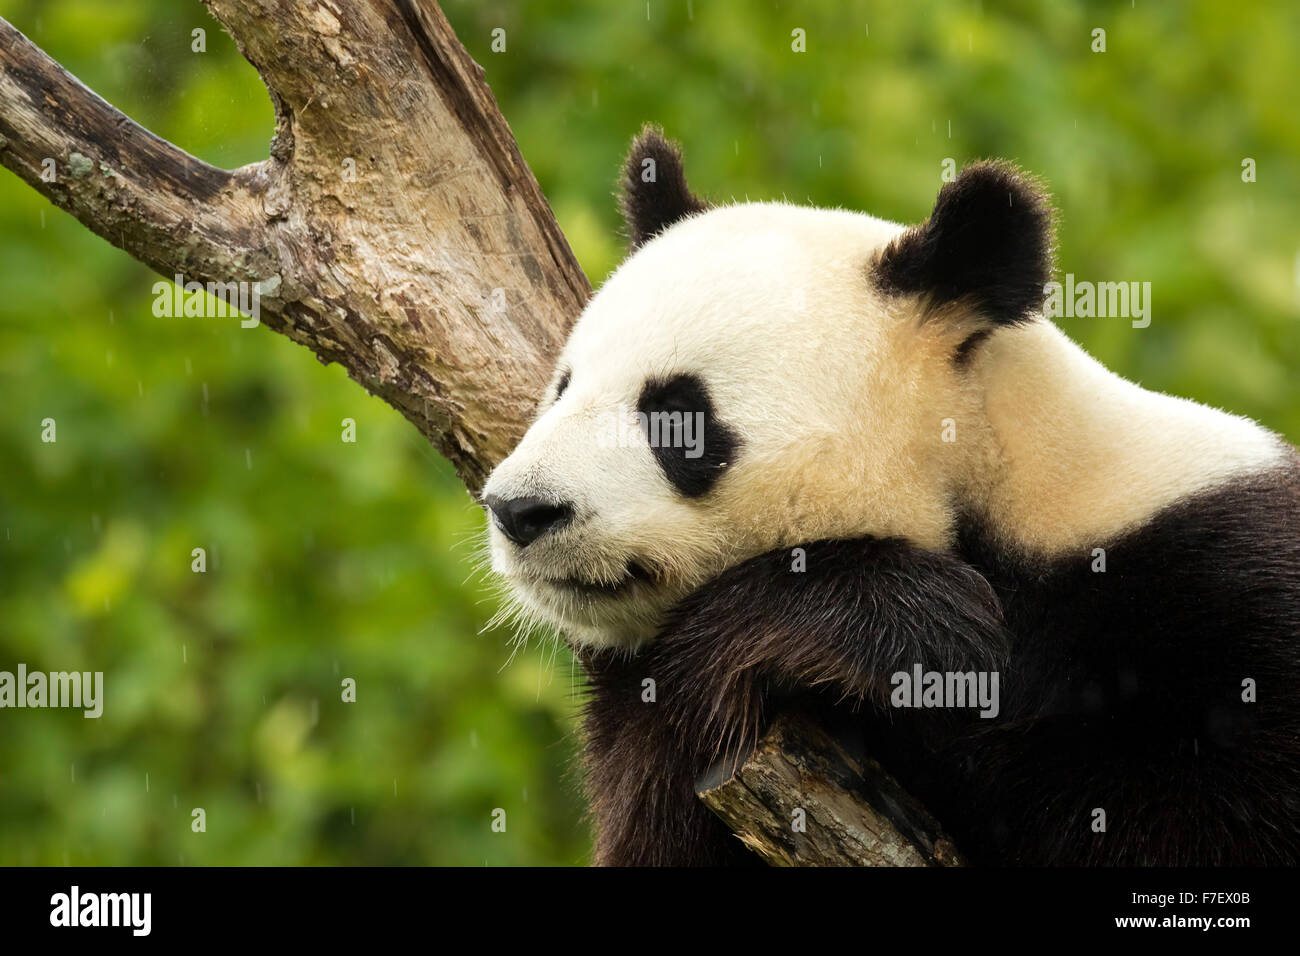 Giant panda bear falls asleep during the rain in a forest after eating bamboo - Stock Image